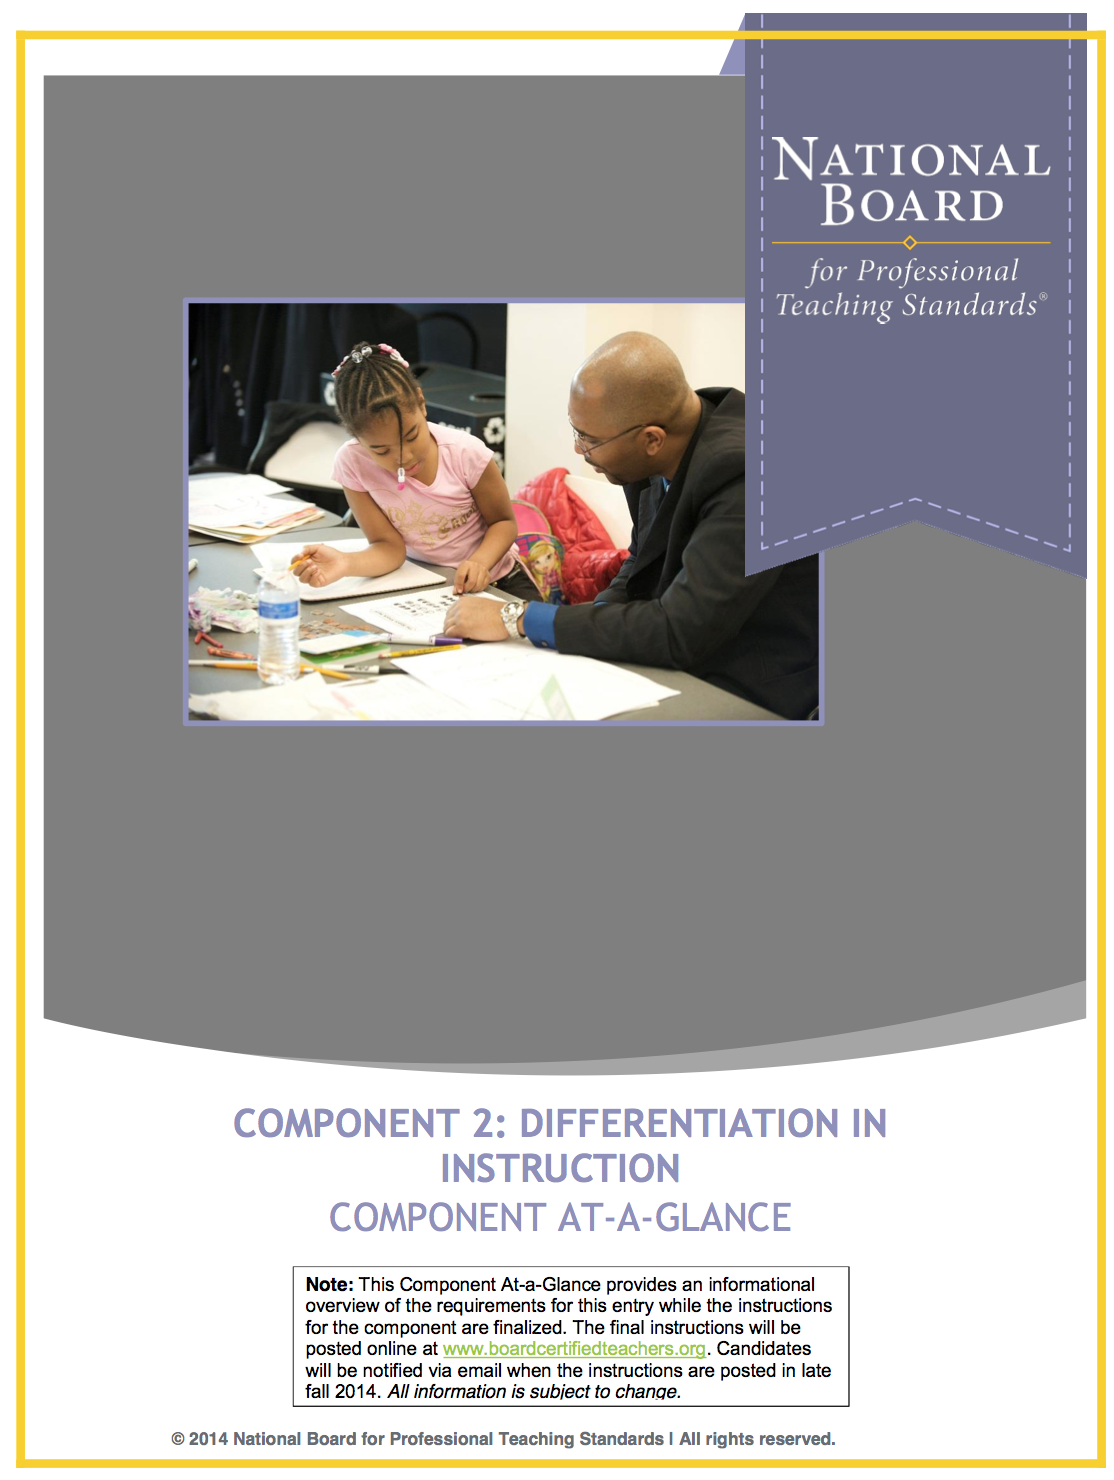 National board certification the nevada national board component 2 differentiation in instruction 1betcityfo Gallery